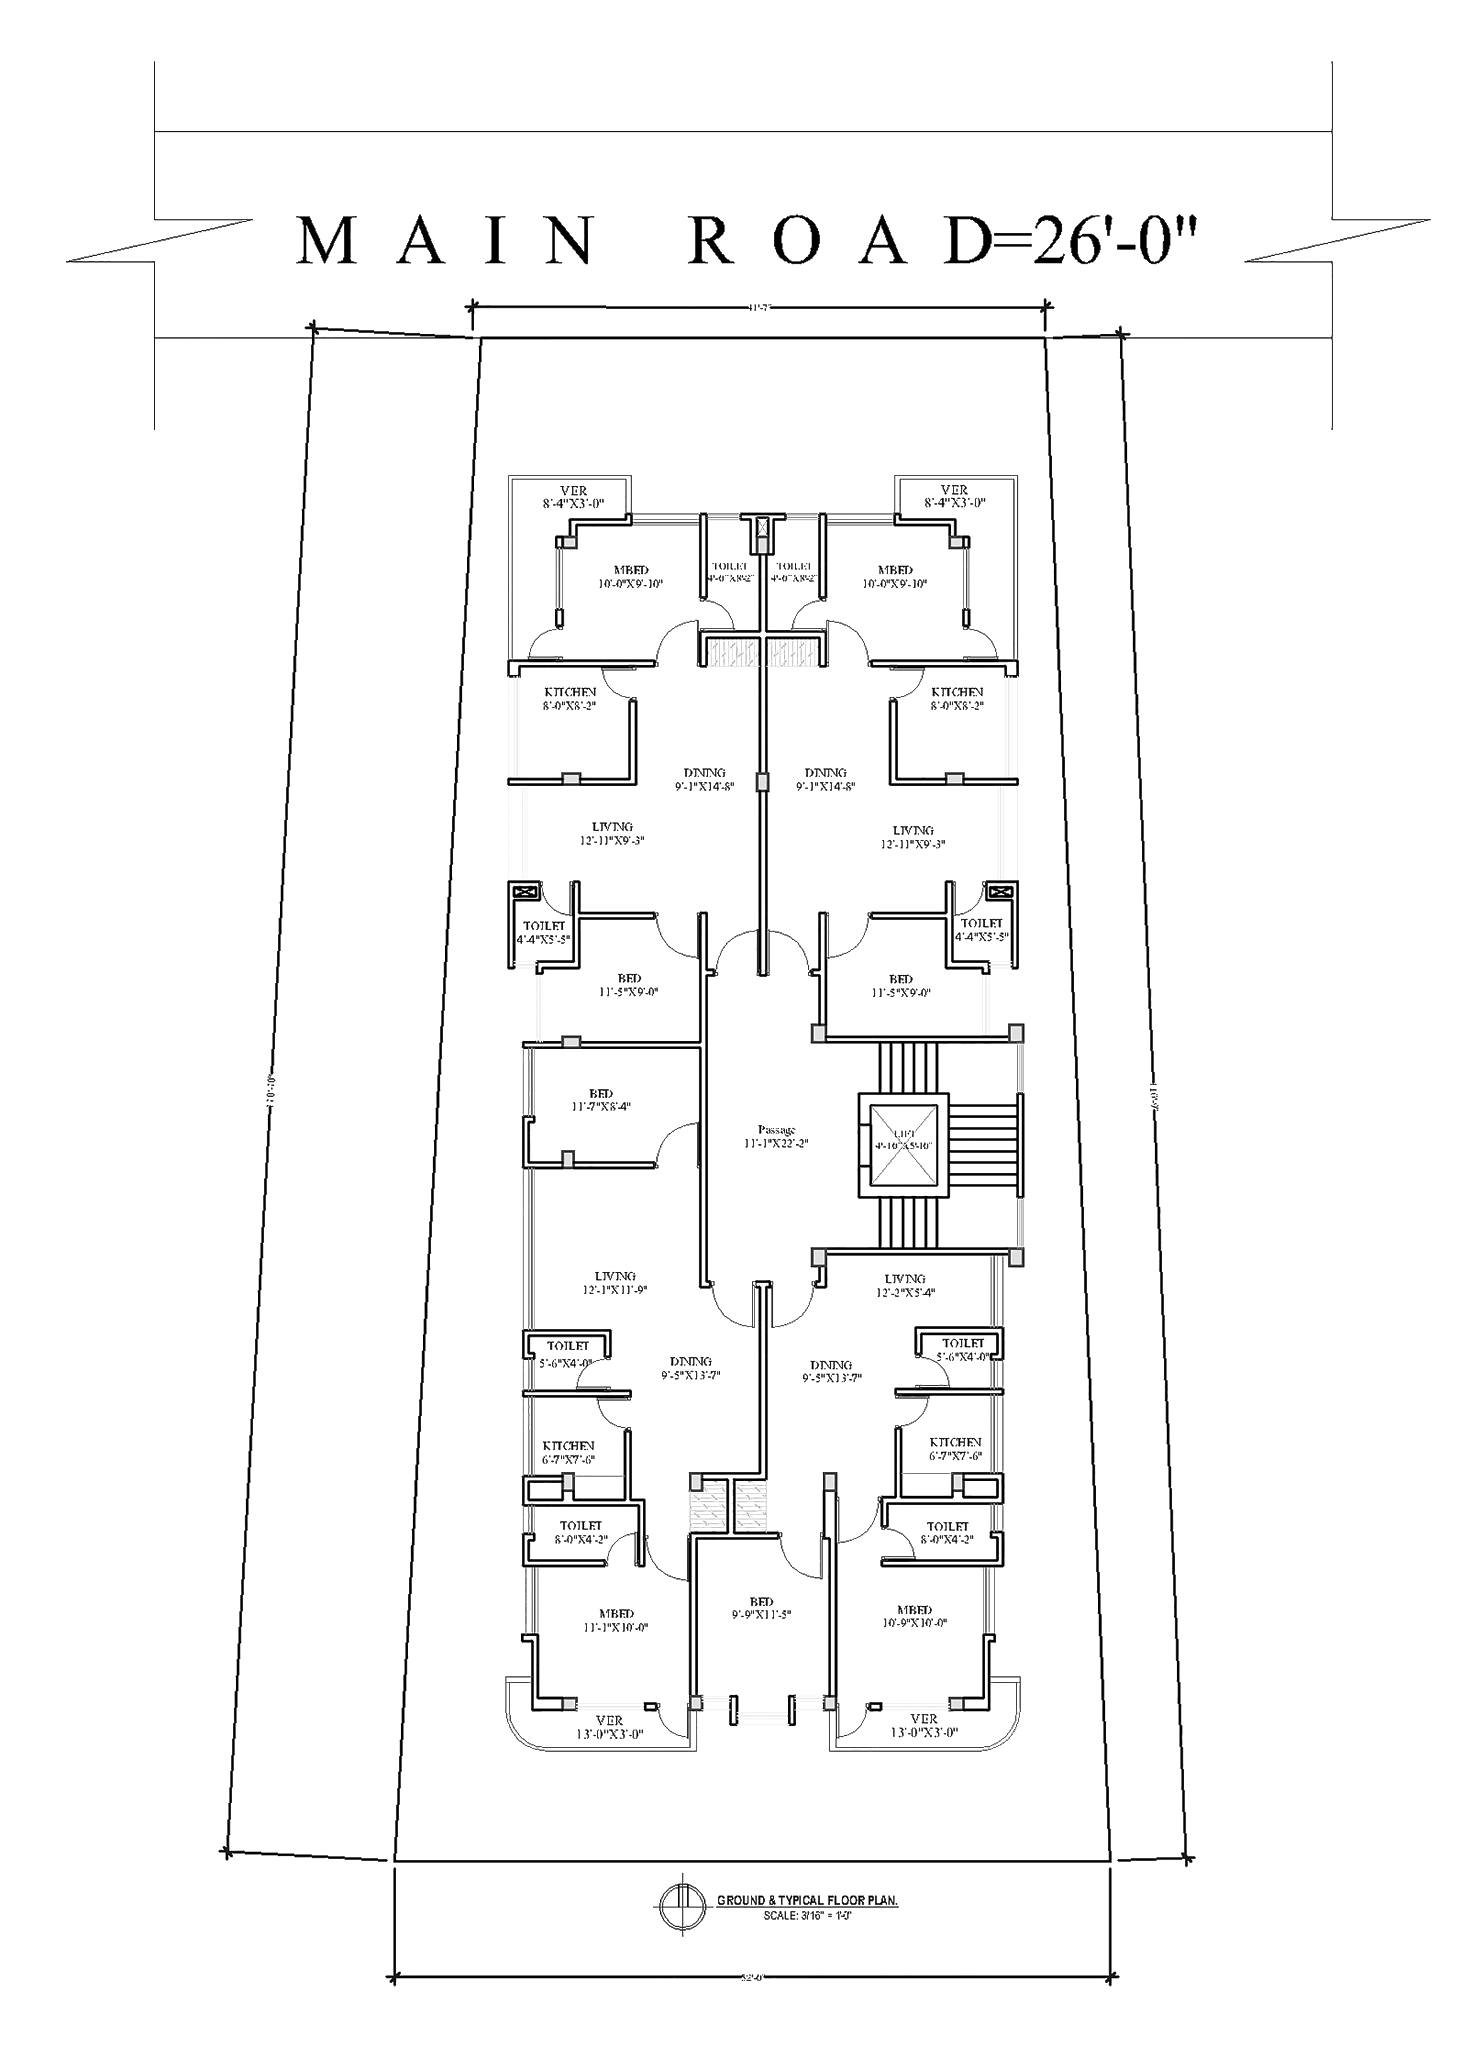 first floor plan proposed area